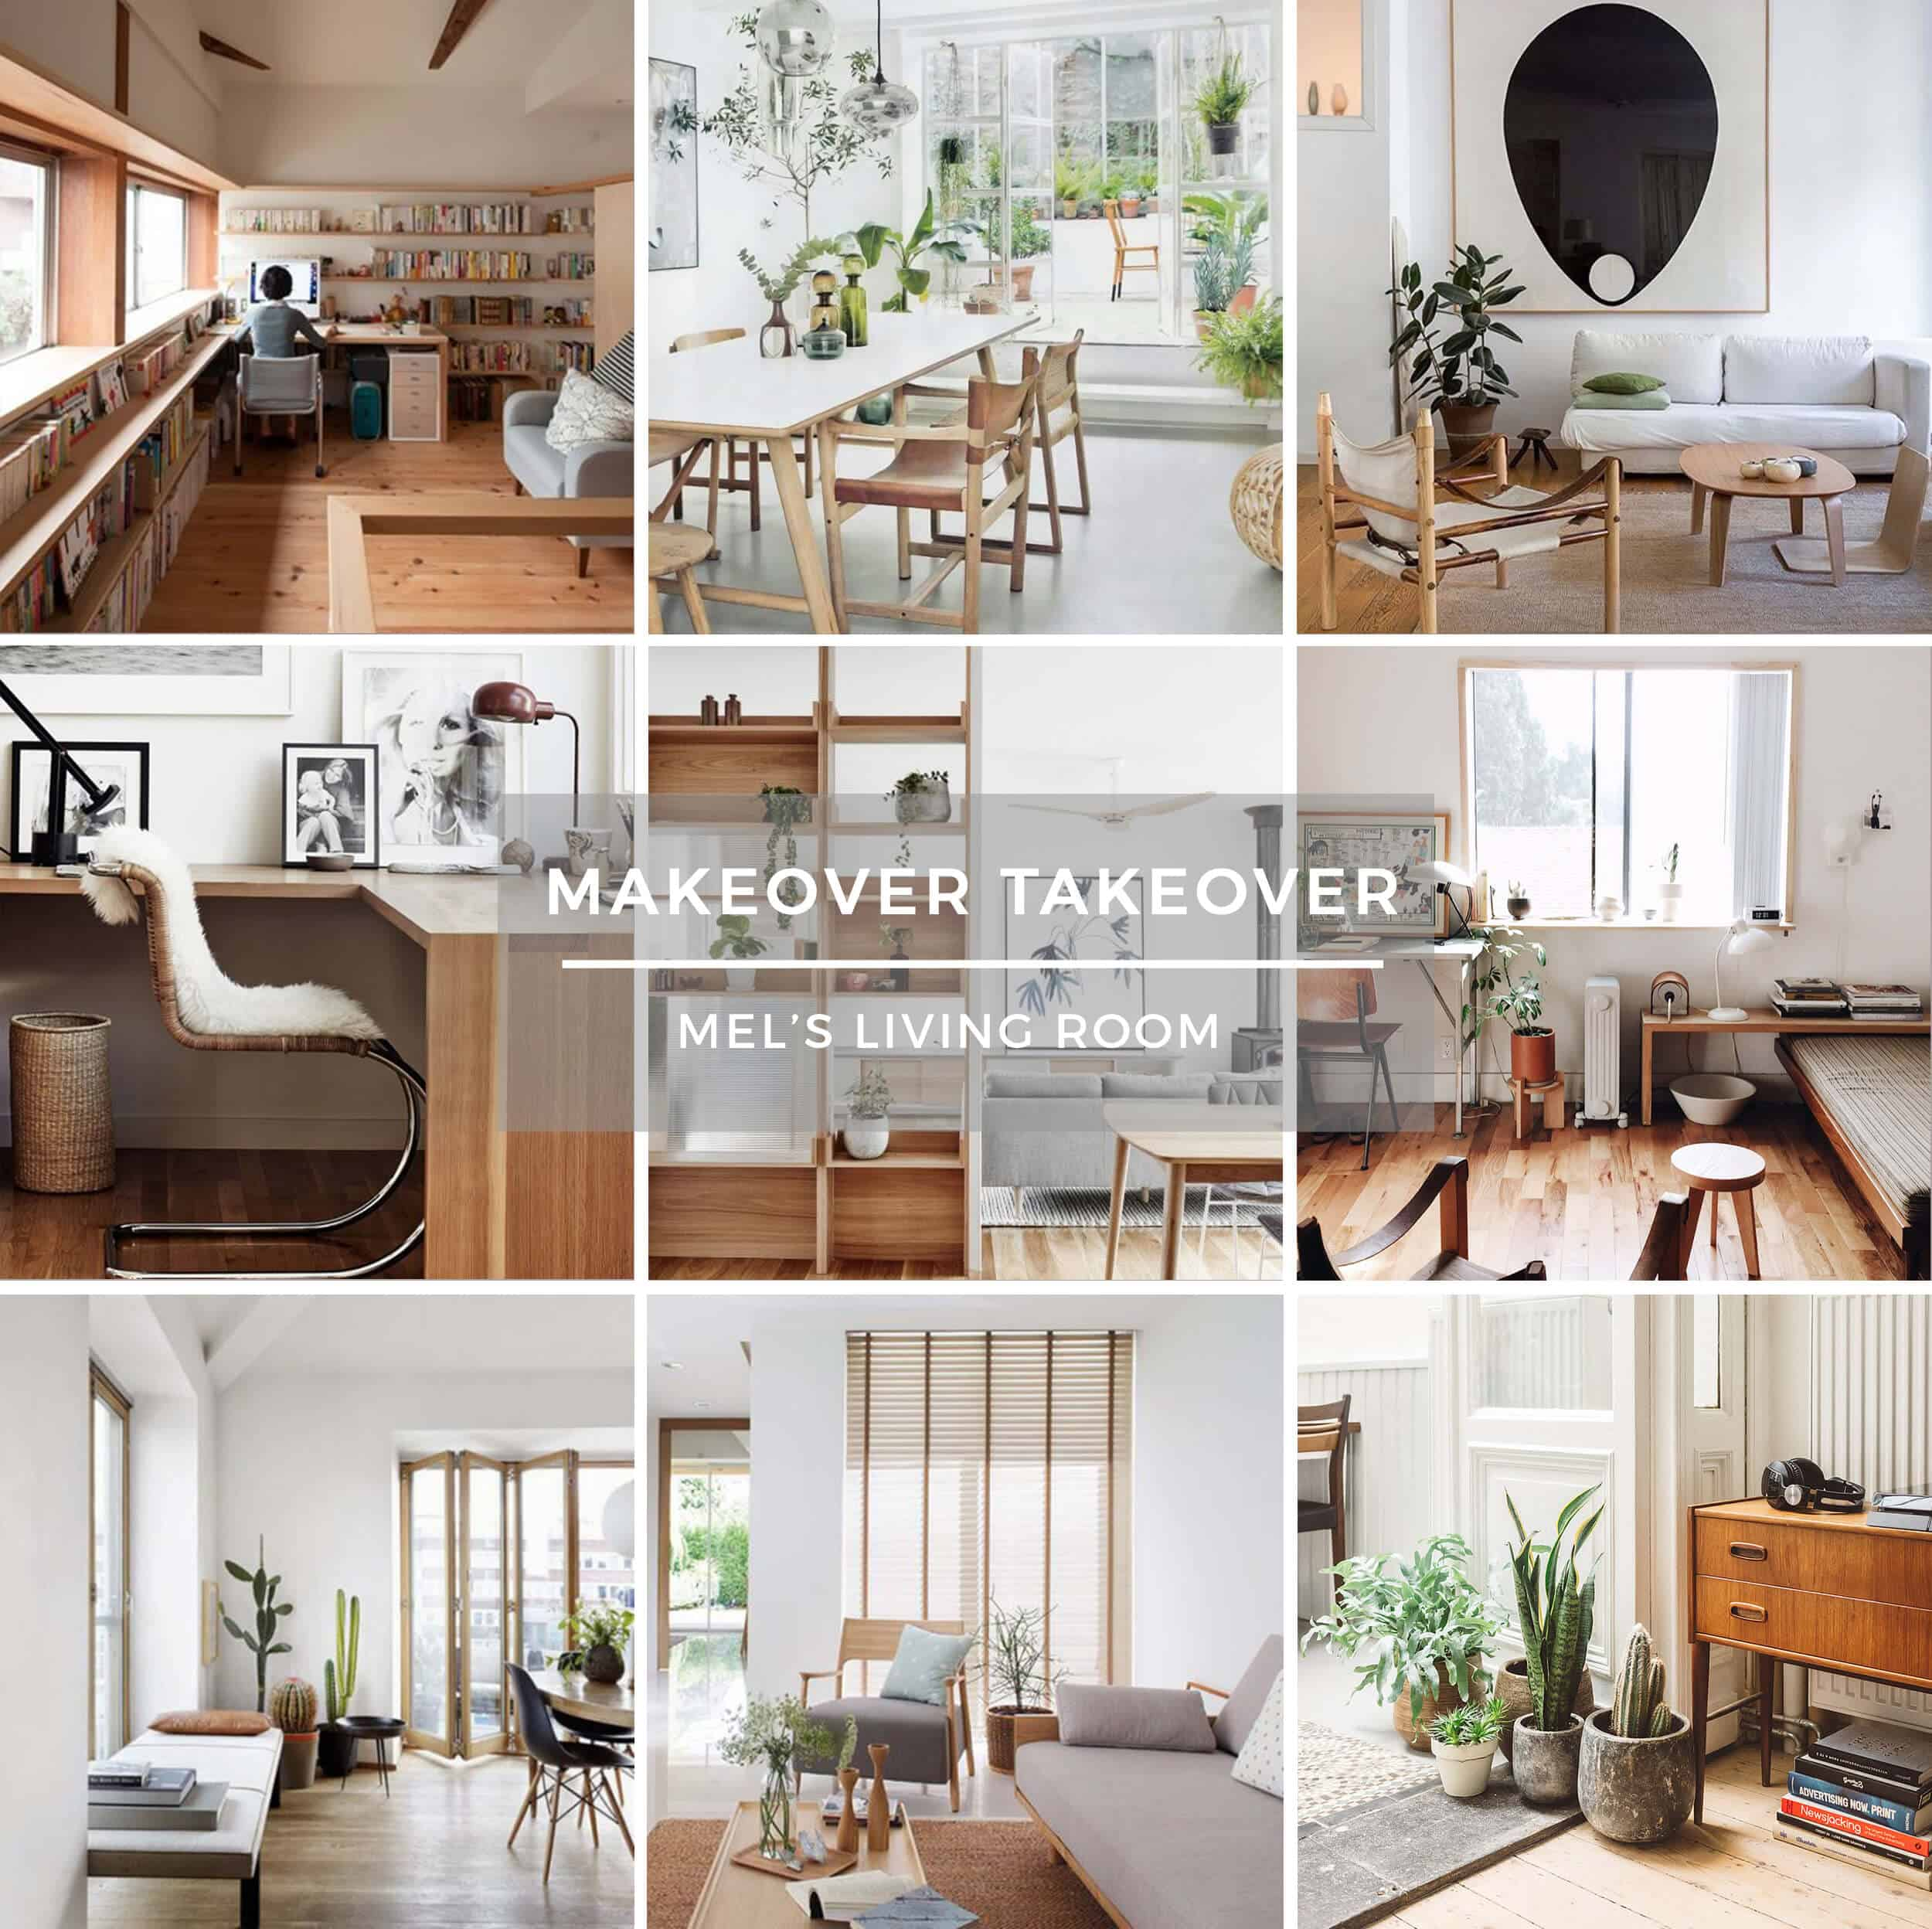 Mel S Living Room Makeover Takeover Introduction Emily Henderson